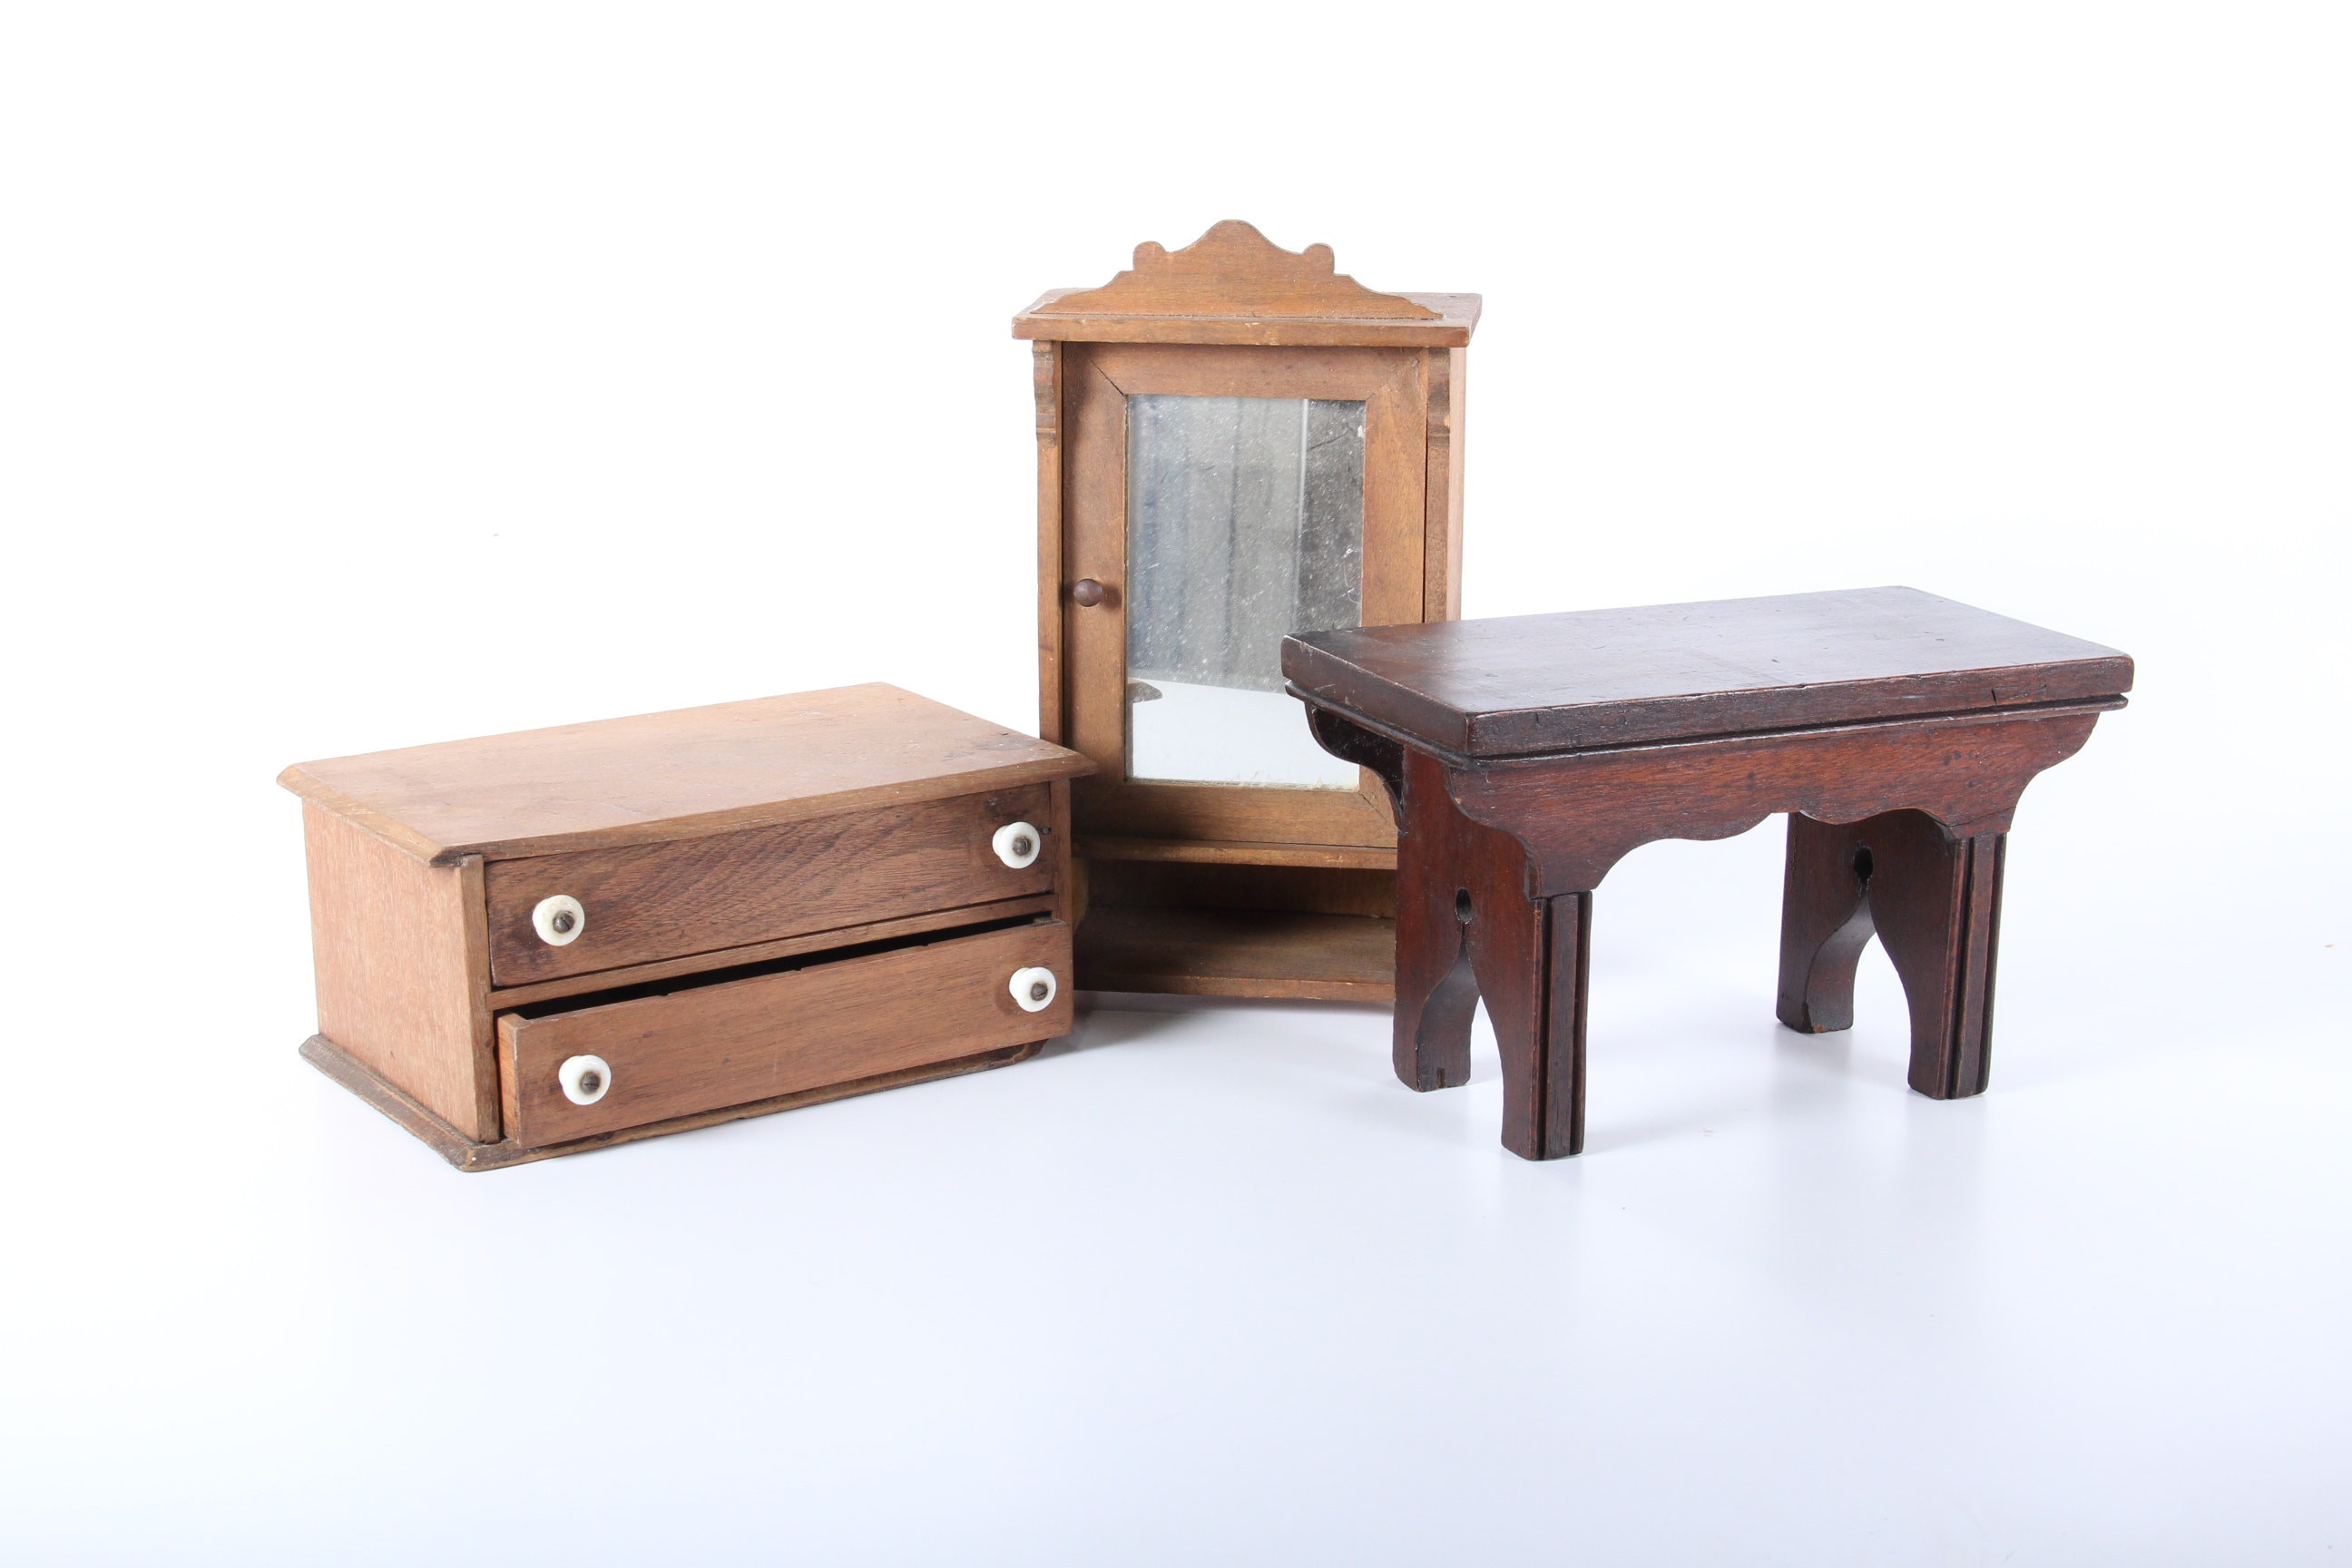 Wooden Antique Doll Furniture